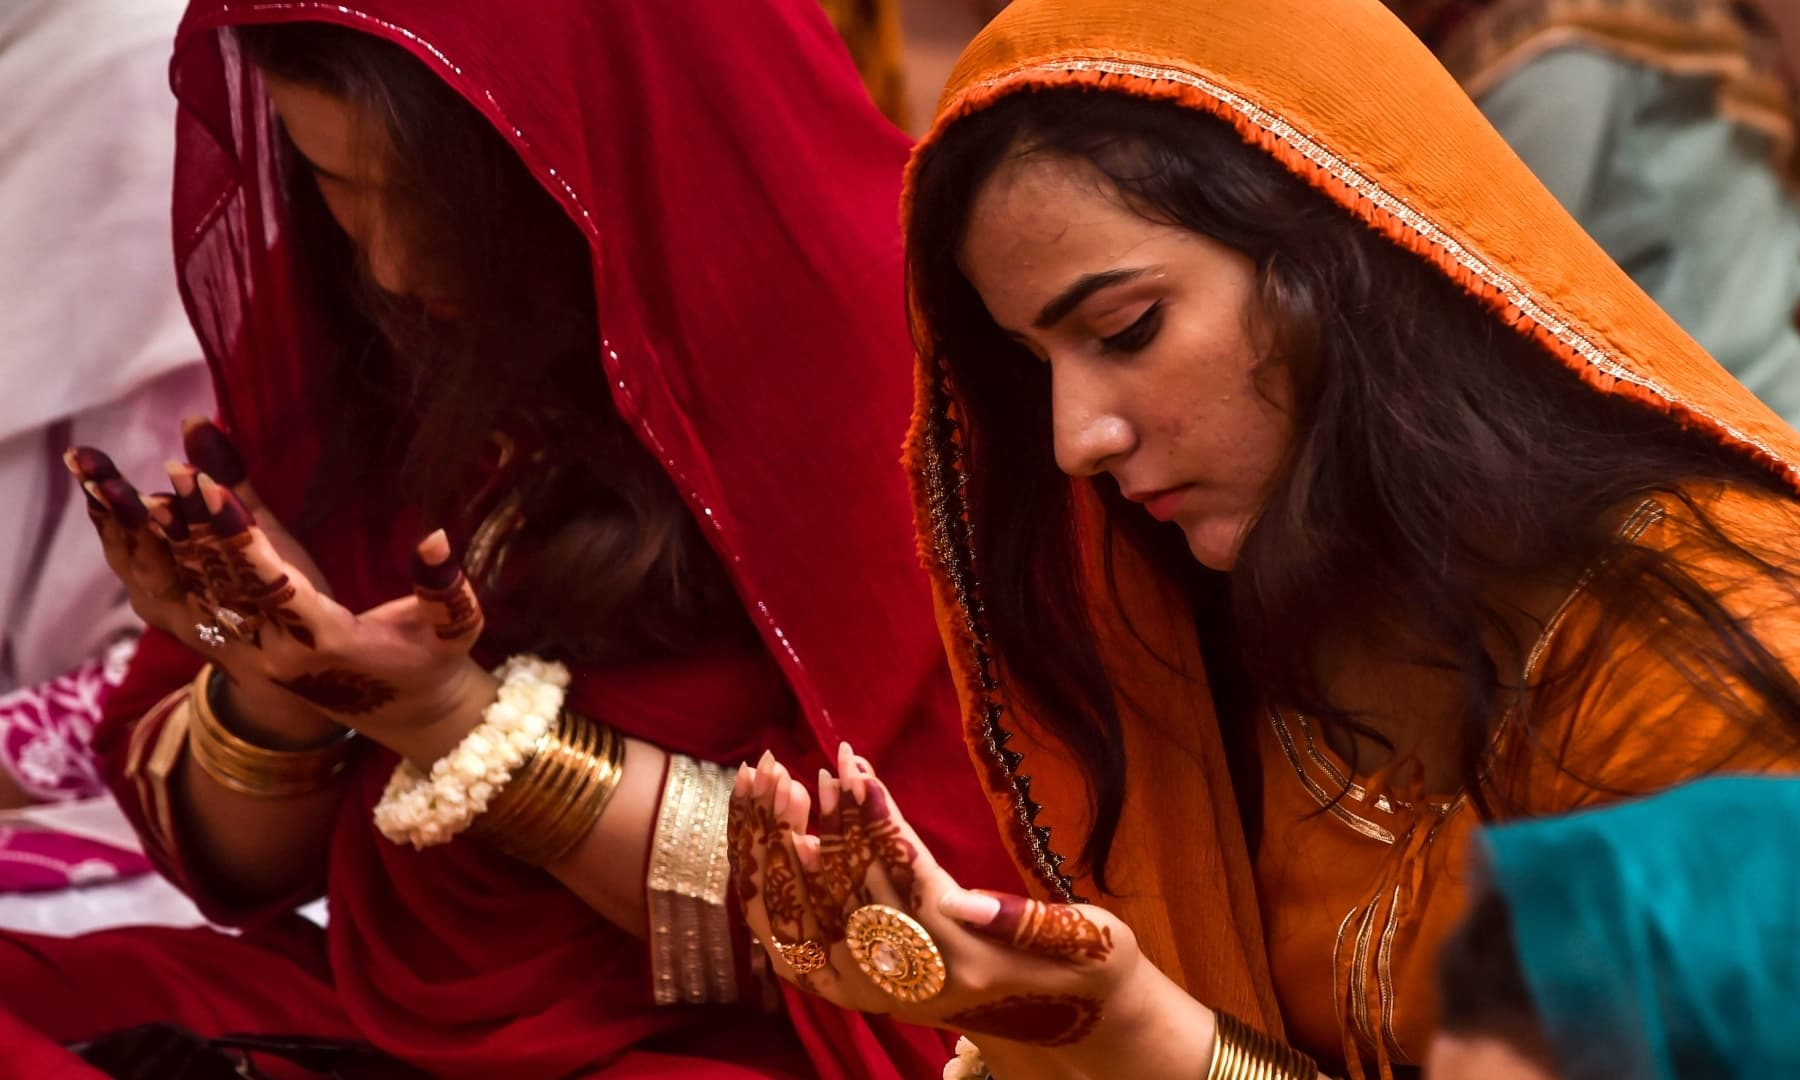 A woman offers prayers at the Badshahi mosque in Lahore on August 1, 2020. — AFP